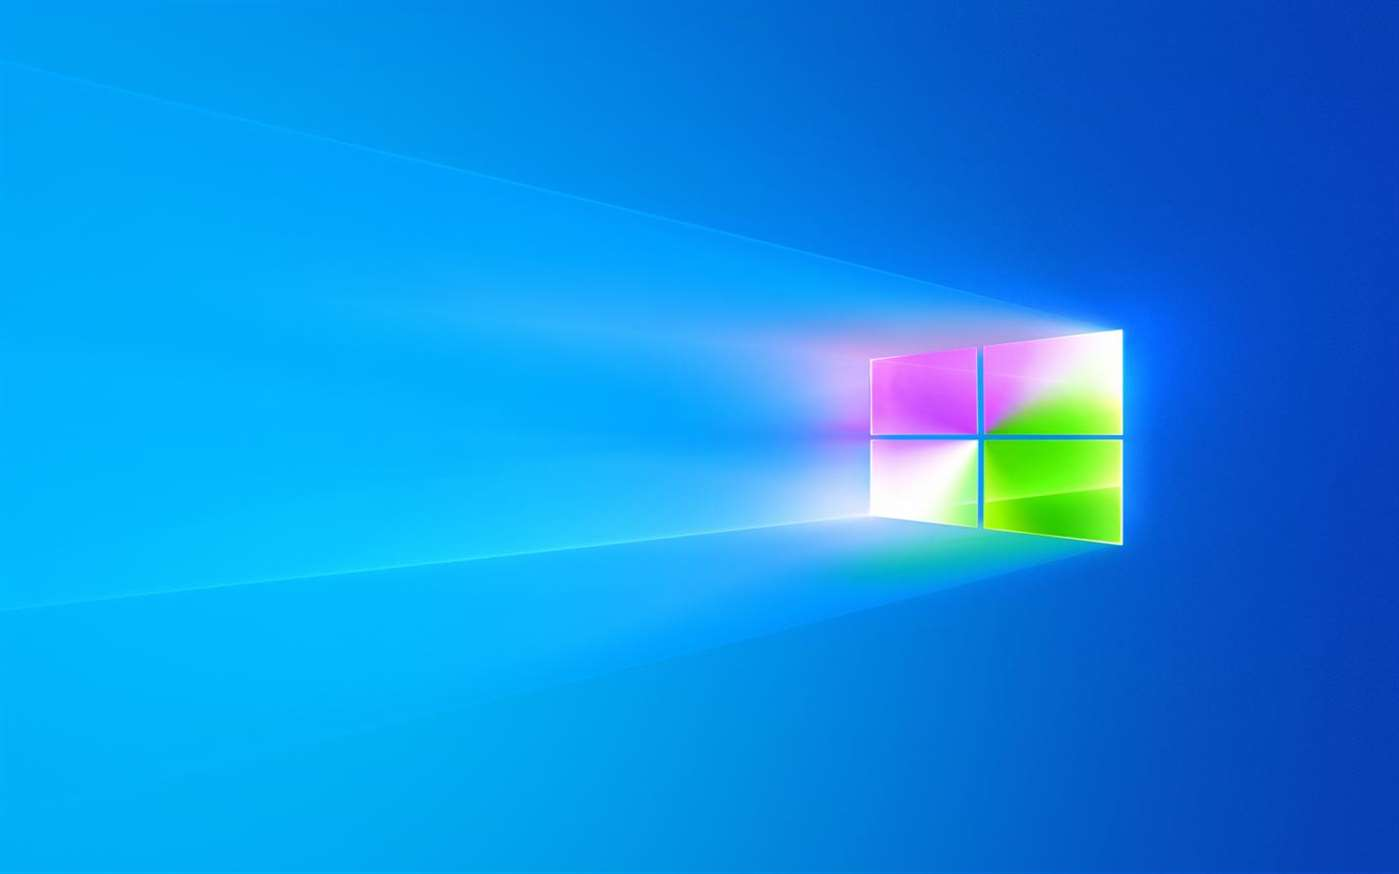 Microsoft celebrate Pride 2019 with new free LGBTQI+-themed Windows 10 wallpaper pack 4